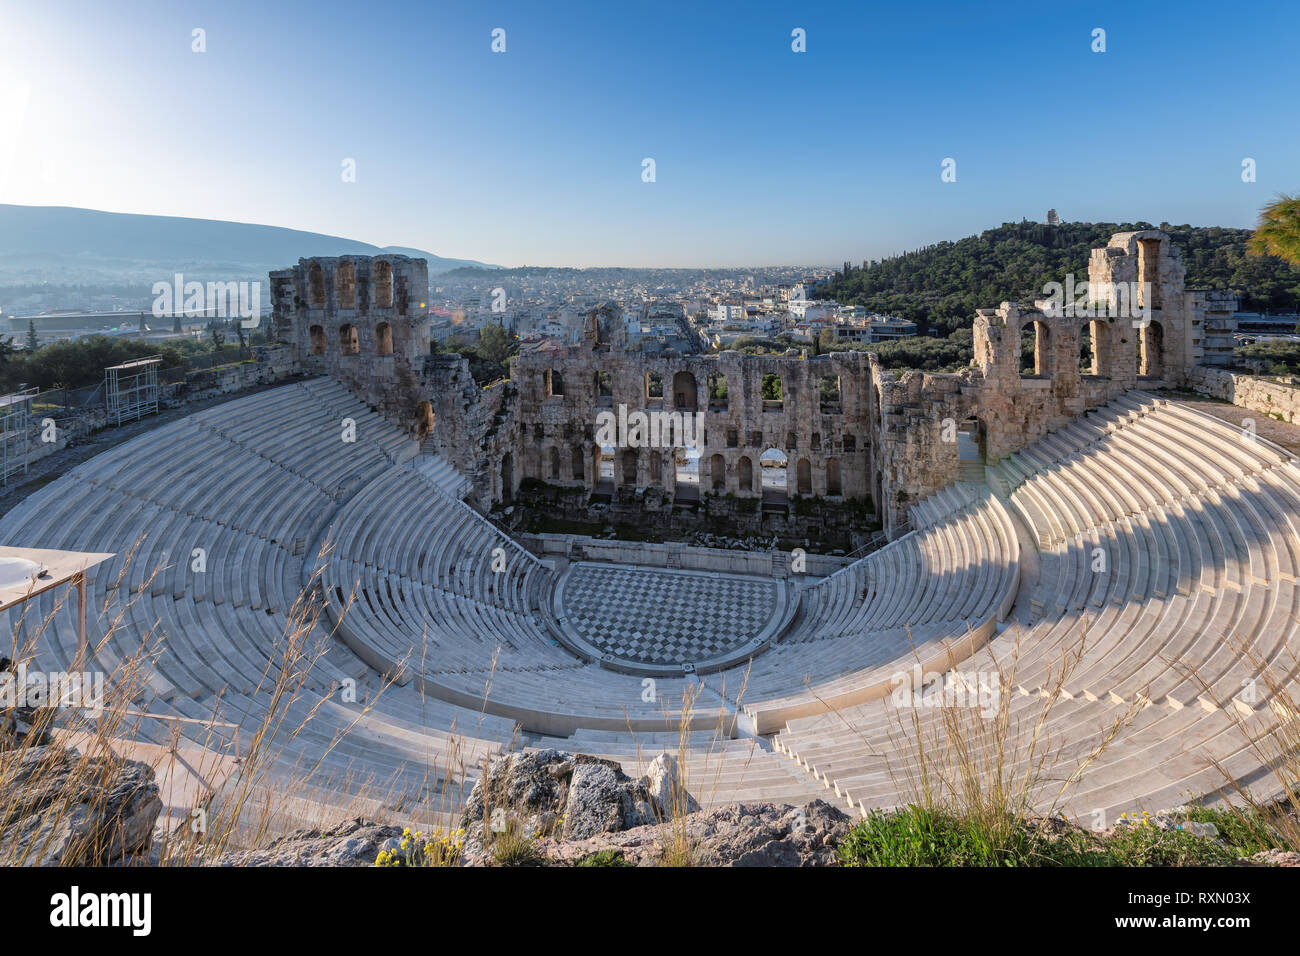 Ancient theater Odeon of Herodes Atticus on Acropolis hill in Athens, Greece - Stock Image